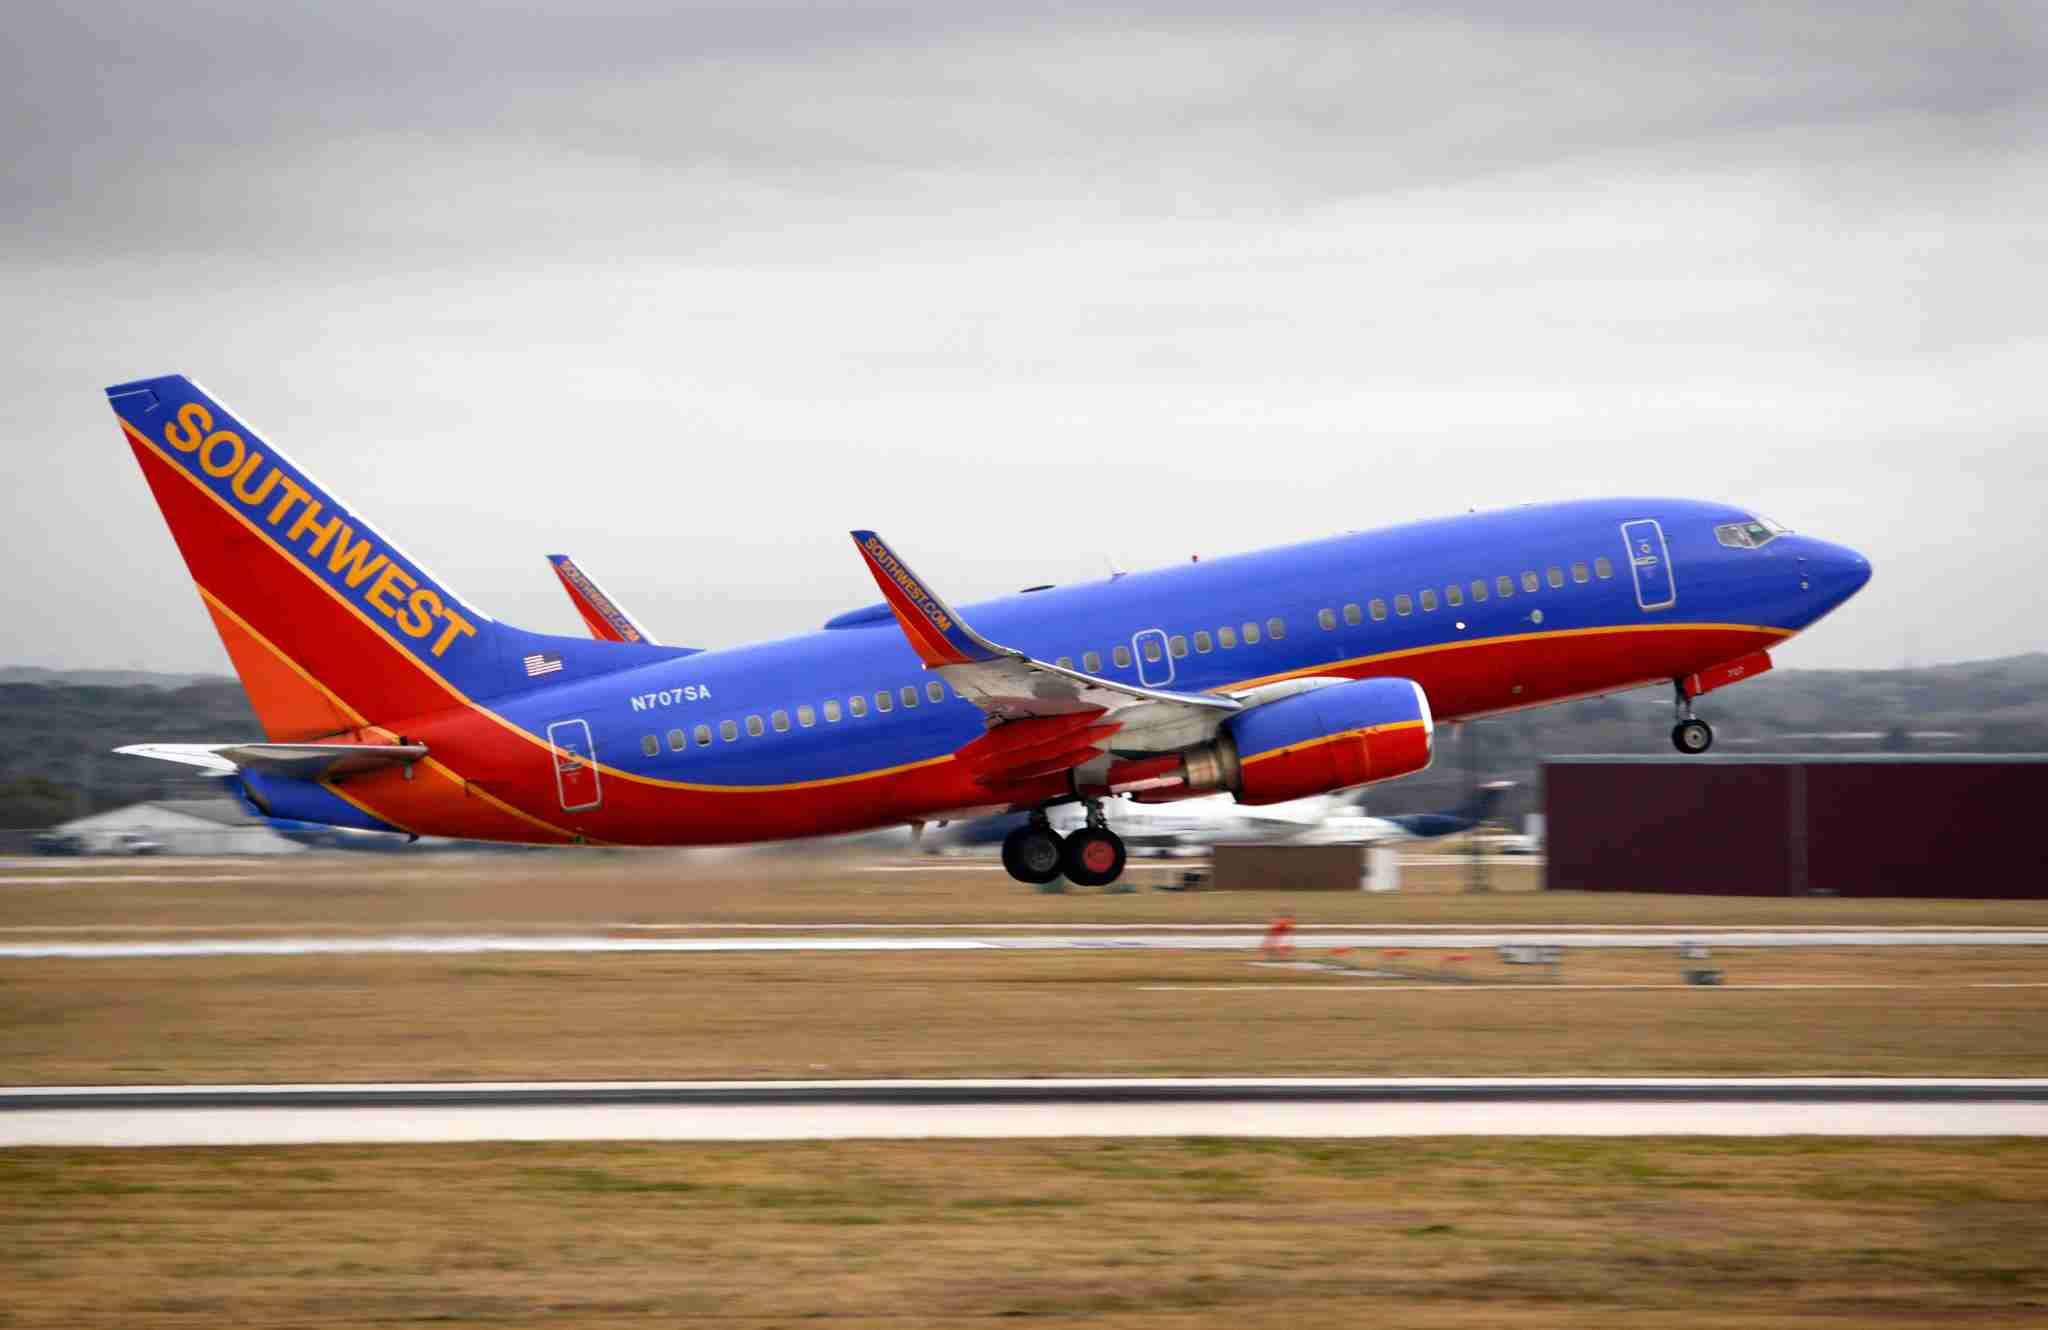 SAN ANTONIO, TEXAS - DECEMBER 12, 2018: A Southwest Airlines Boeing 737 passenger jet takes off from San Antonio International Airport in Texas. (Photo by Robert Alexander/Getty Images)